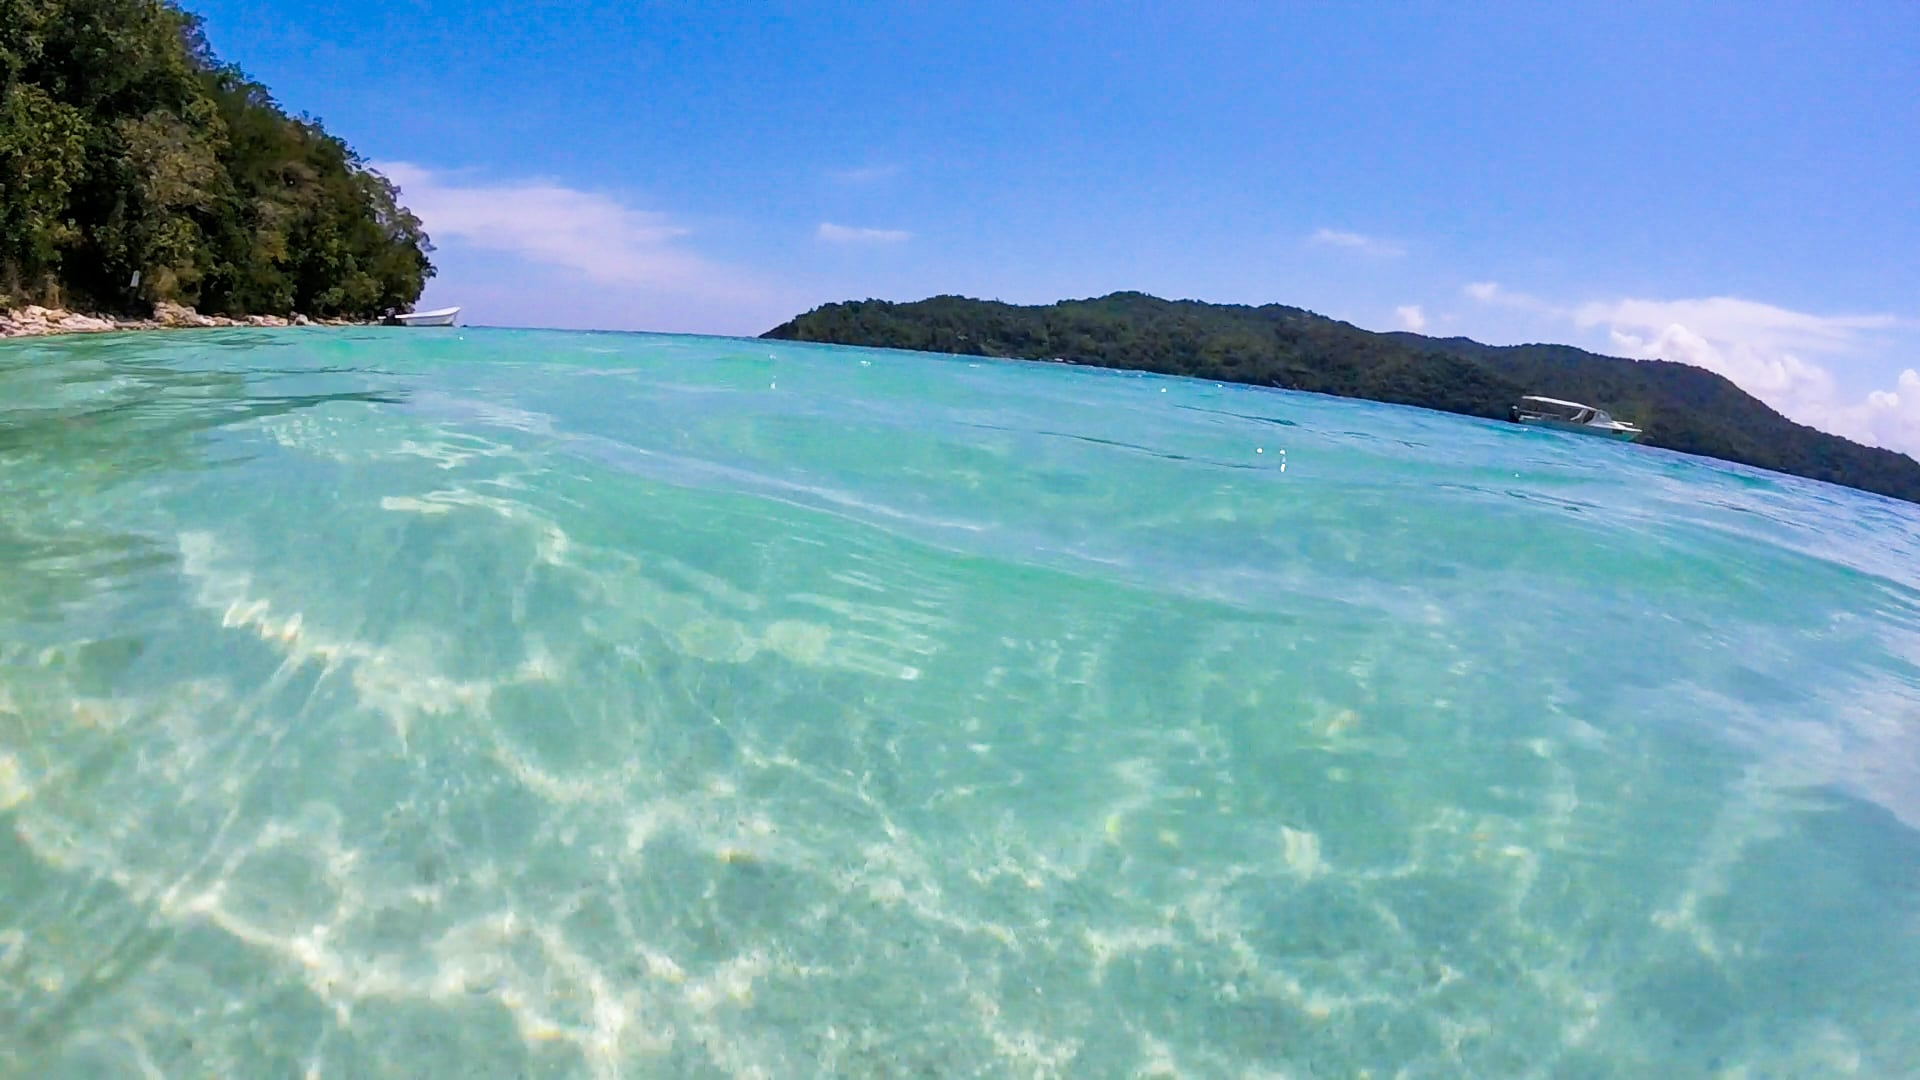 crystal clear waters of Pandan Pandan Island (Borneo)